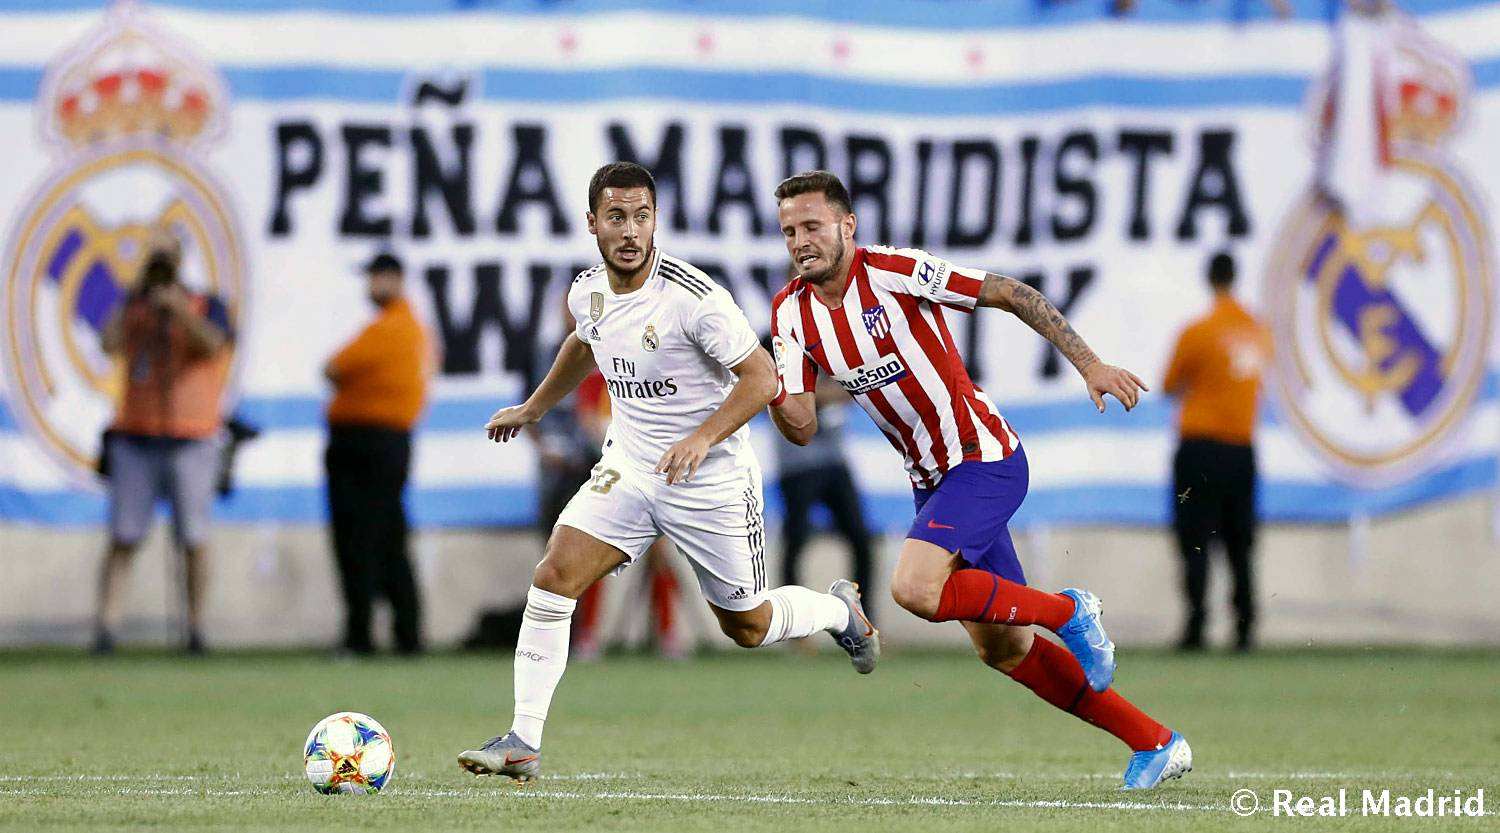 International Champions Cup: Real Madrid 3-7 Atlético Madrid